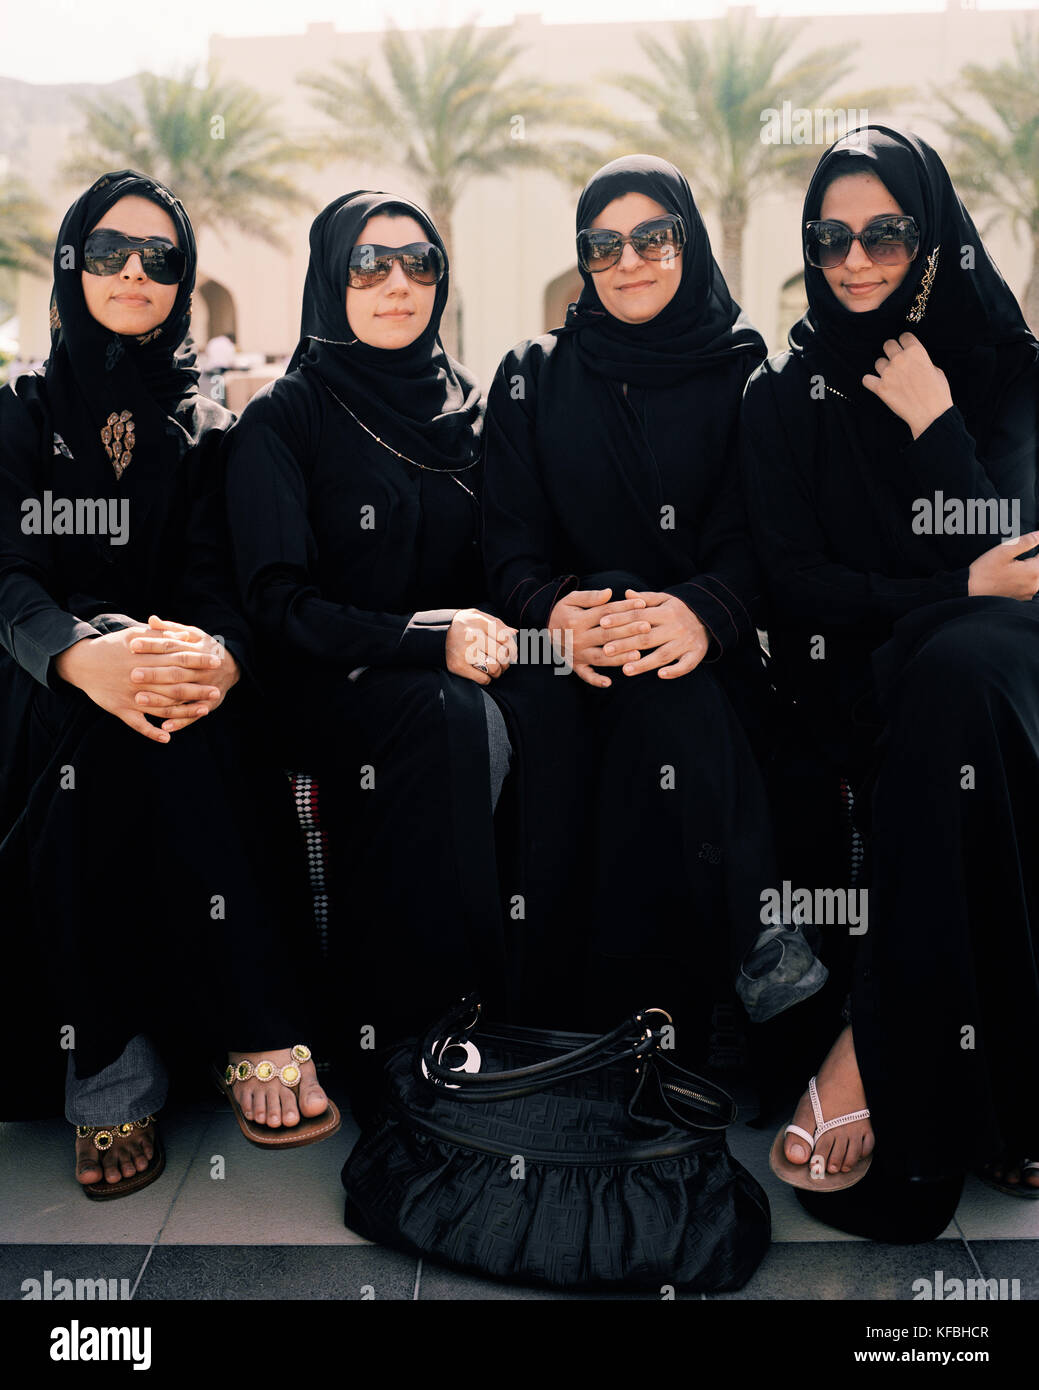 lodge single muslim girls Muslima has helped thousands of muslim singles find their match as one of the leading islamic matrimonial sites, we are one of the largest and most trusted sites around not many other sites can offer you a membership database of over 45 million members with the promise of introducing you to single muslim men and women across the world.